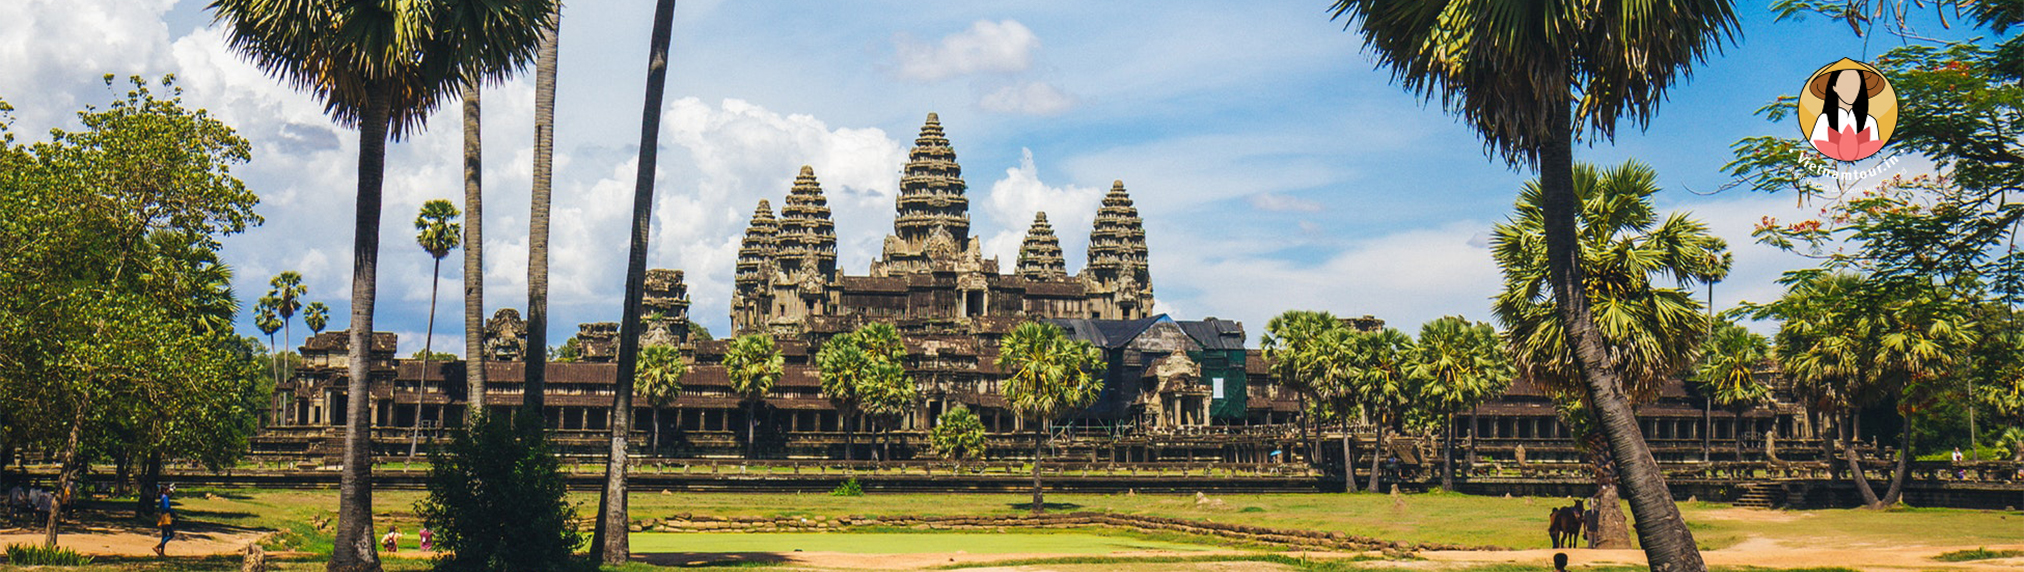 cambodia tour packages from mumbai